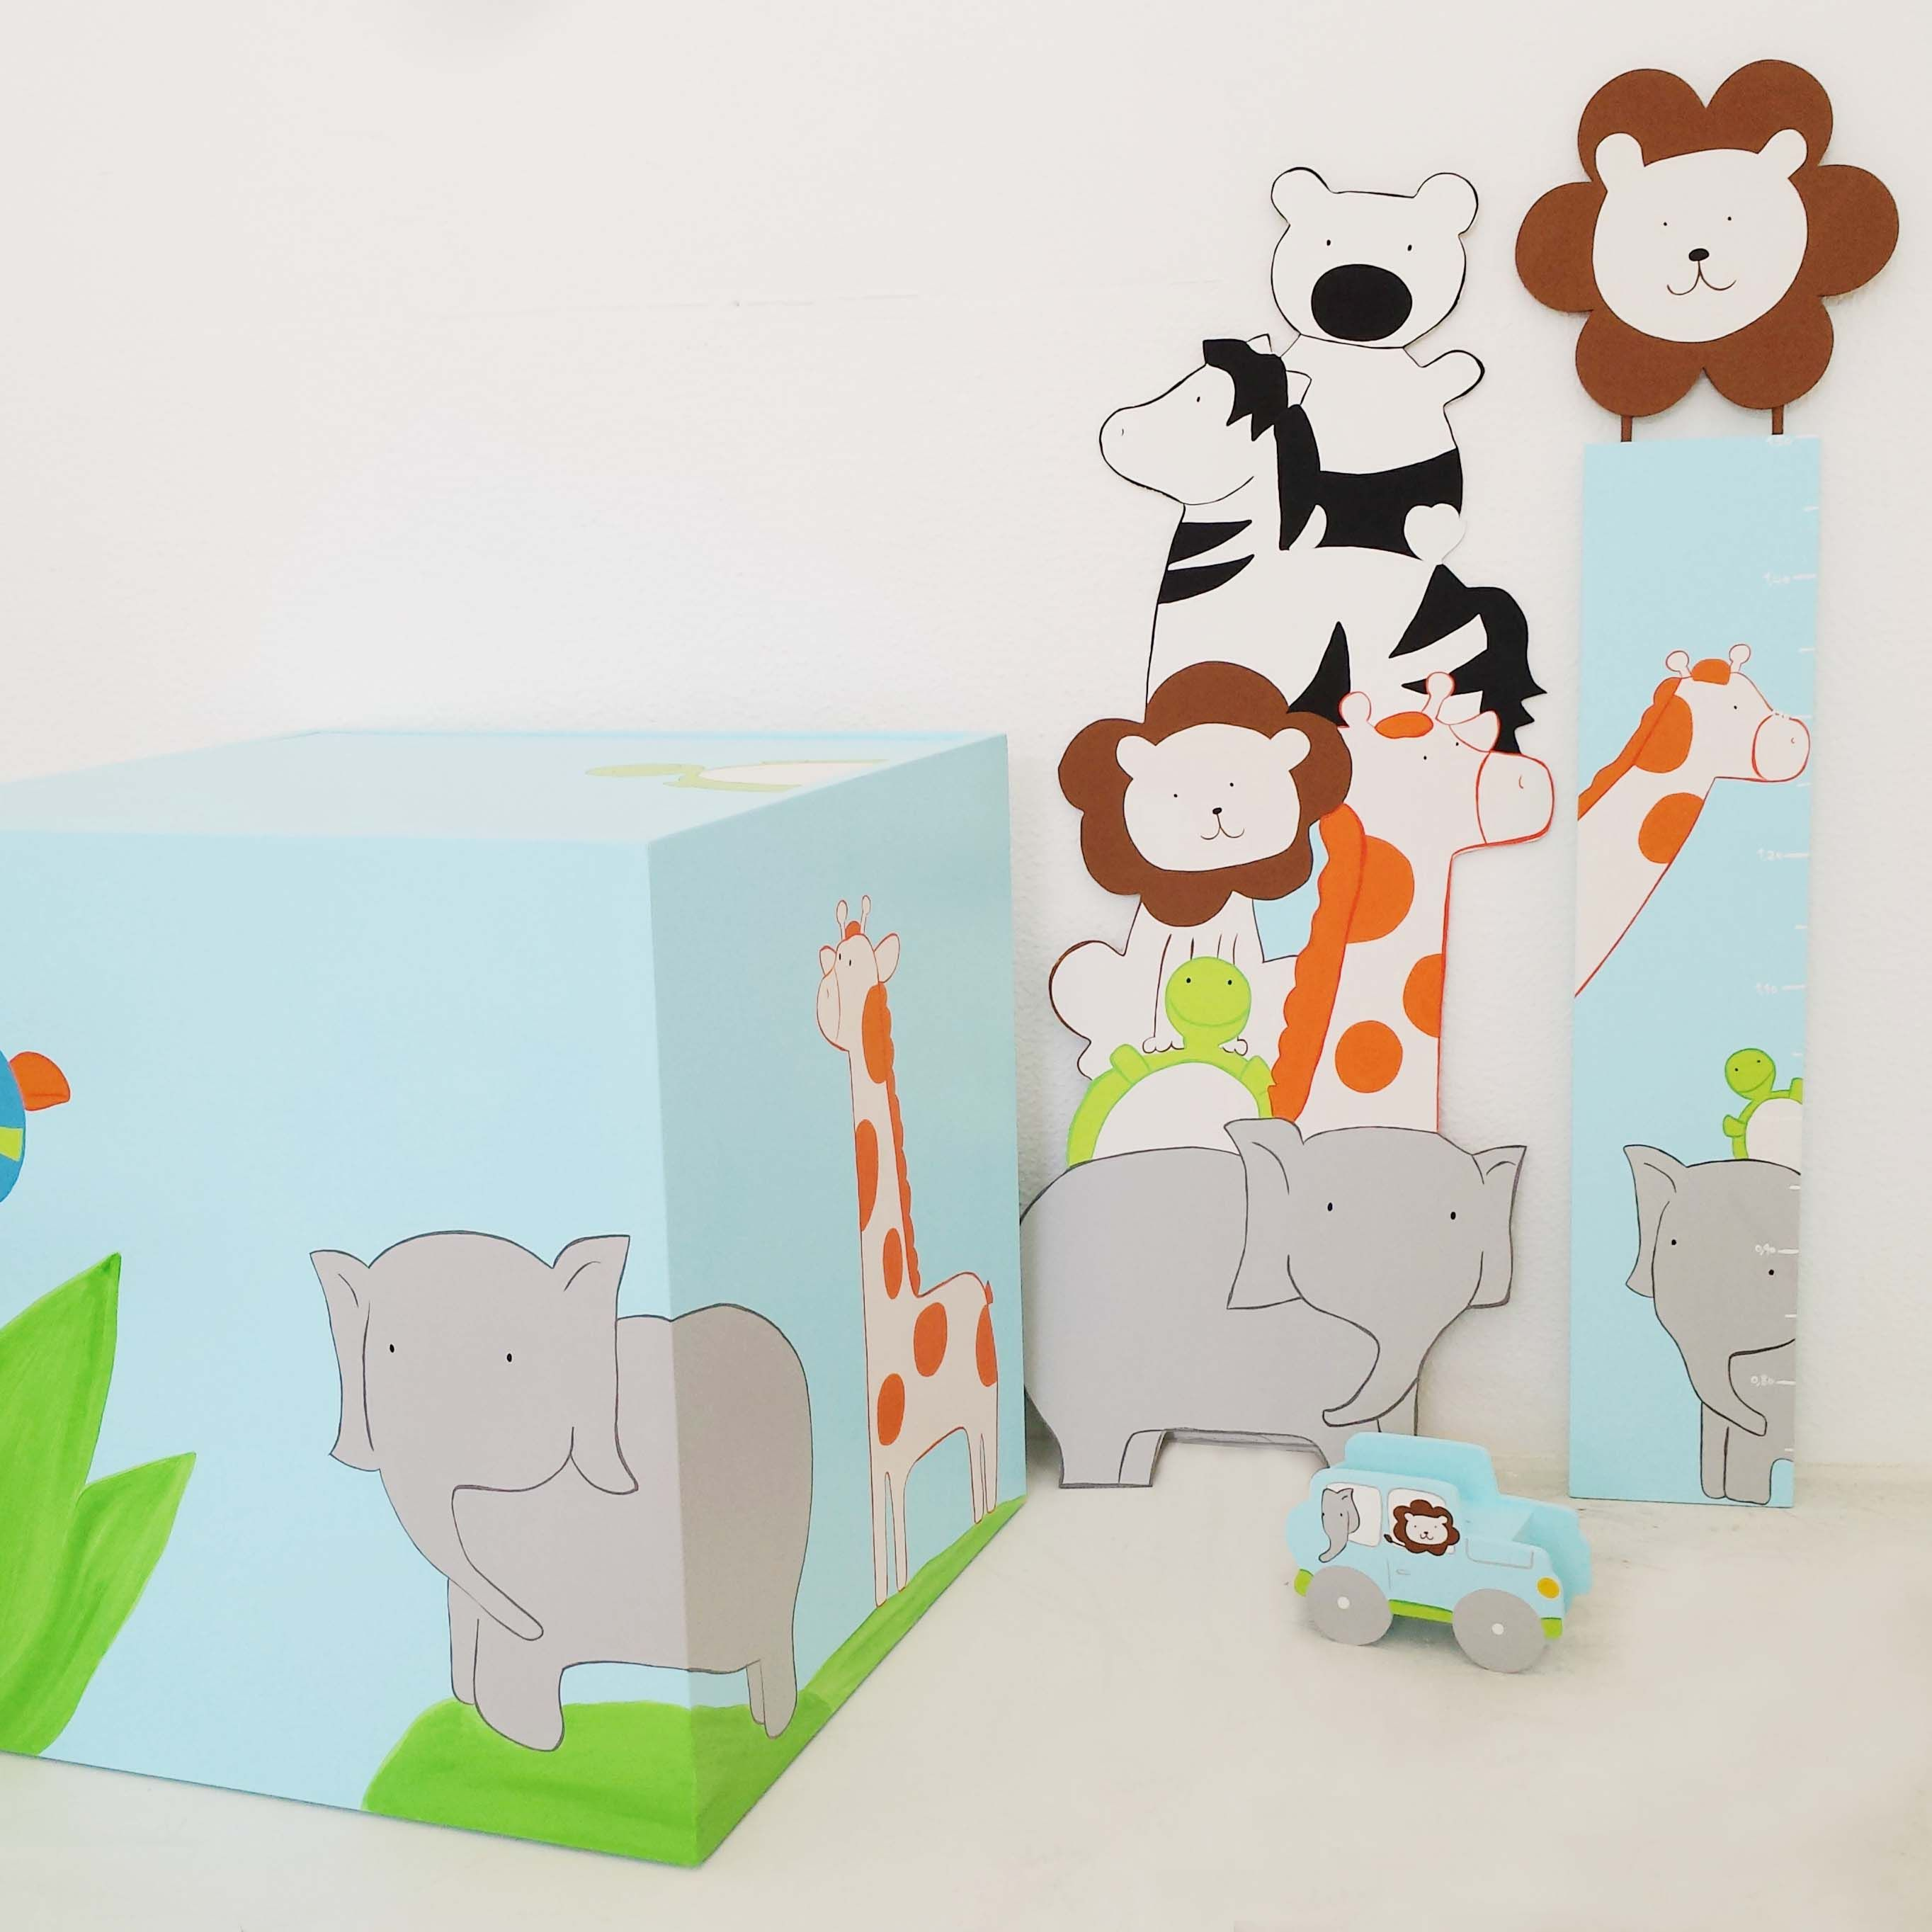 Henrique's jungle little pals. - by Cristiana Resina